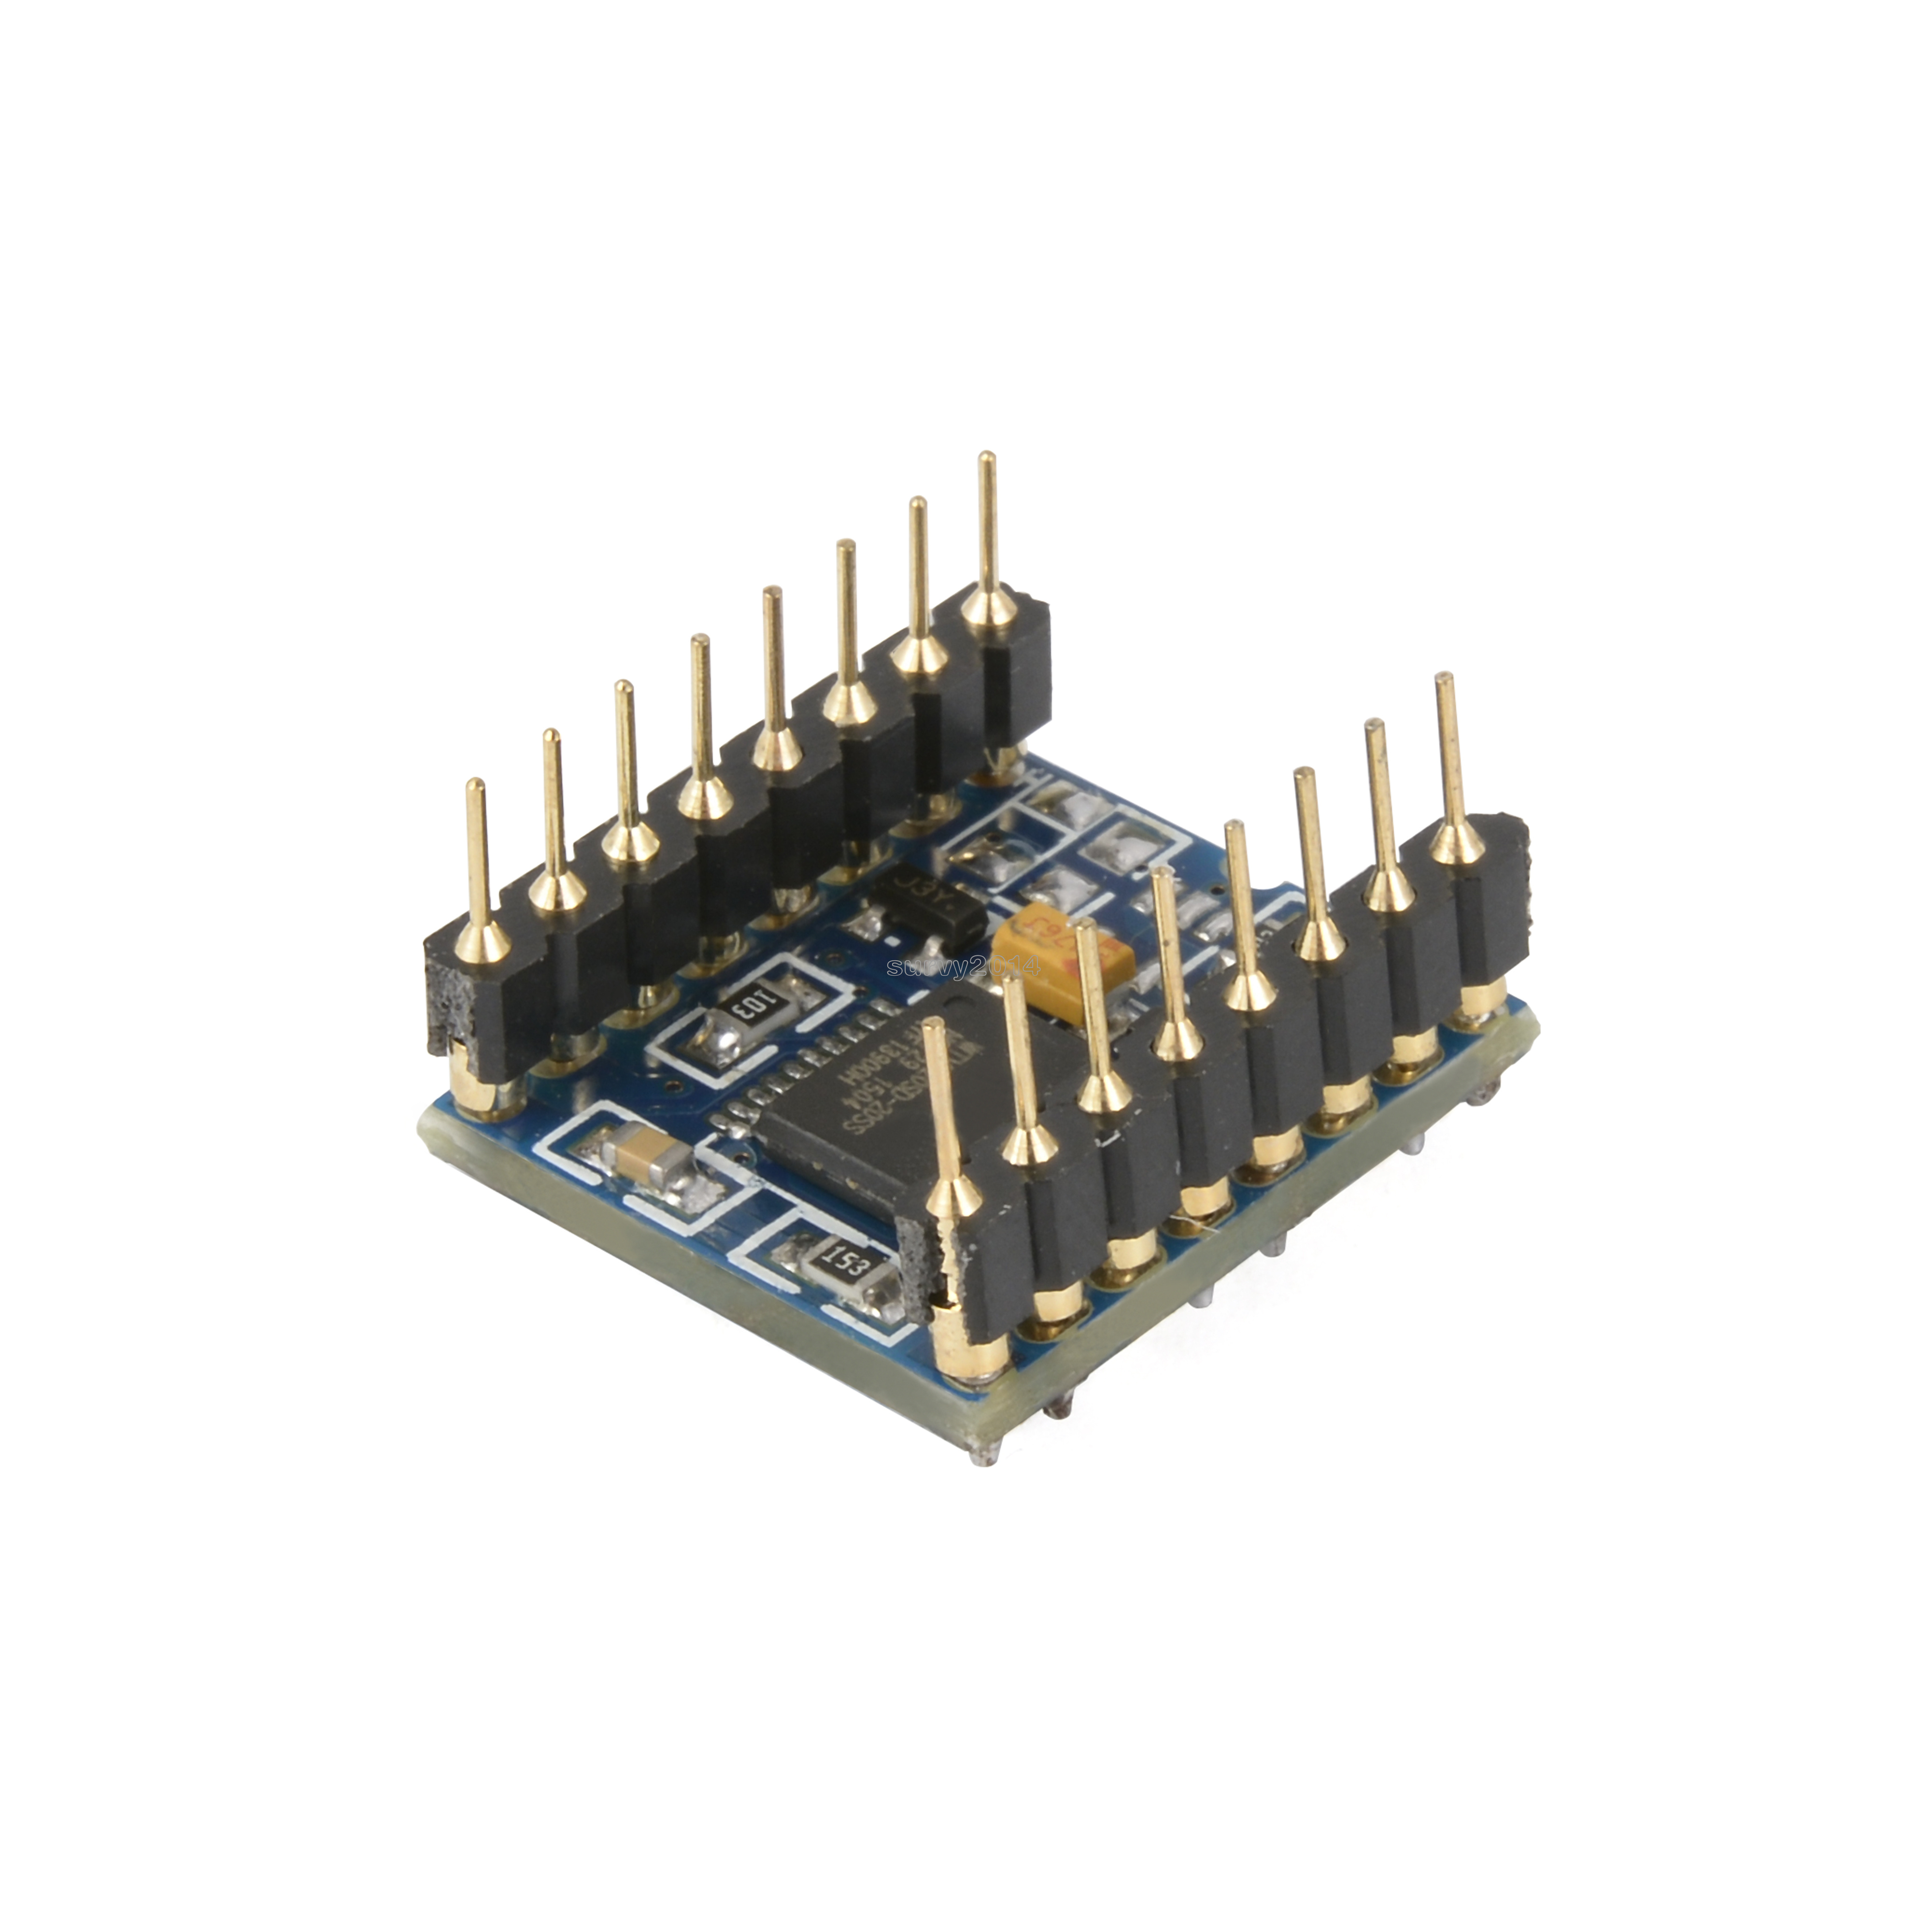 2pcs U Disk Audio Player Tf Sd Card Voice Module Mp3 Sound Wtv020 How To Use Wtv020sd Music With Arduino Build Circuit Product Descriptions